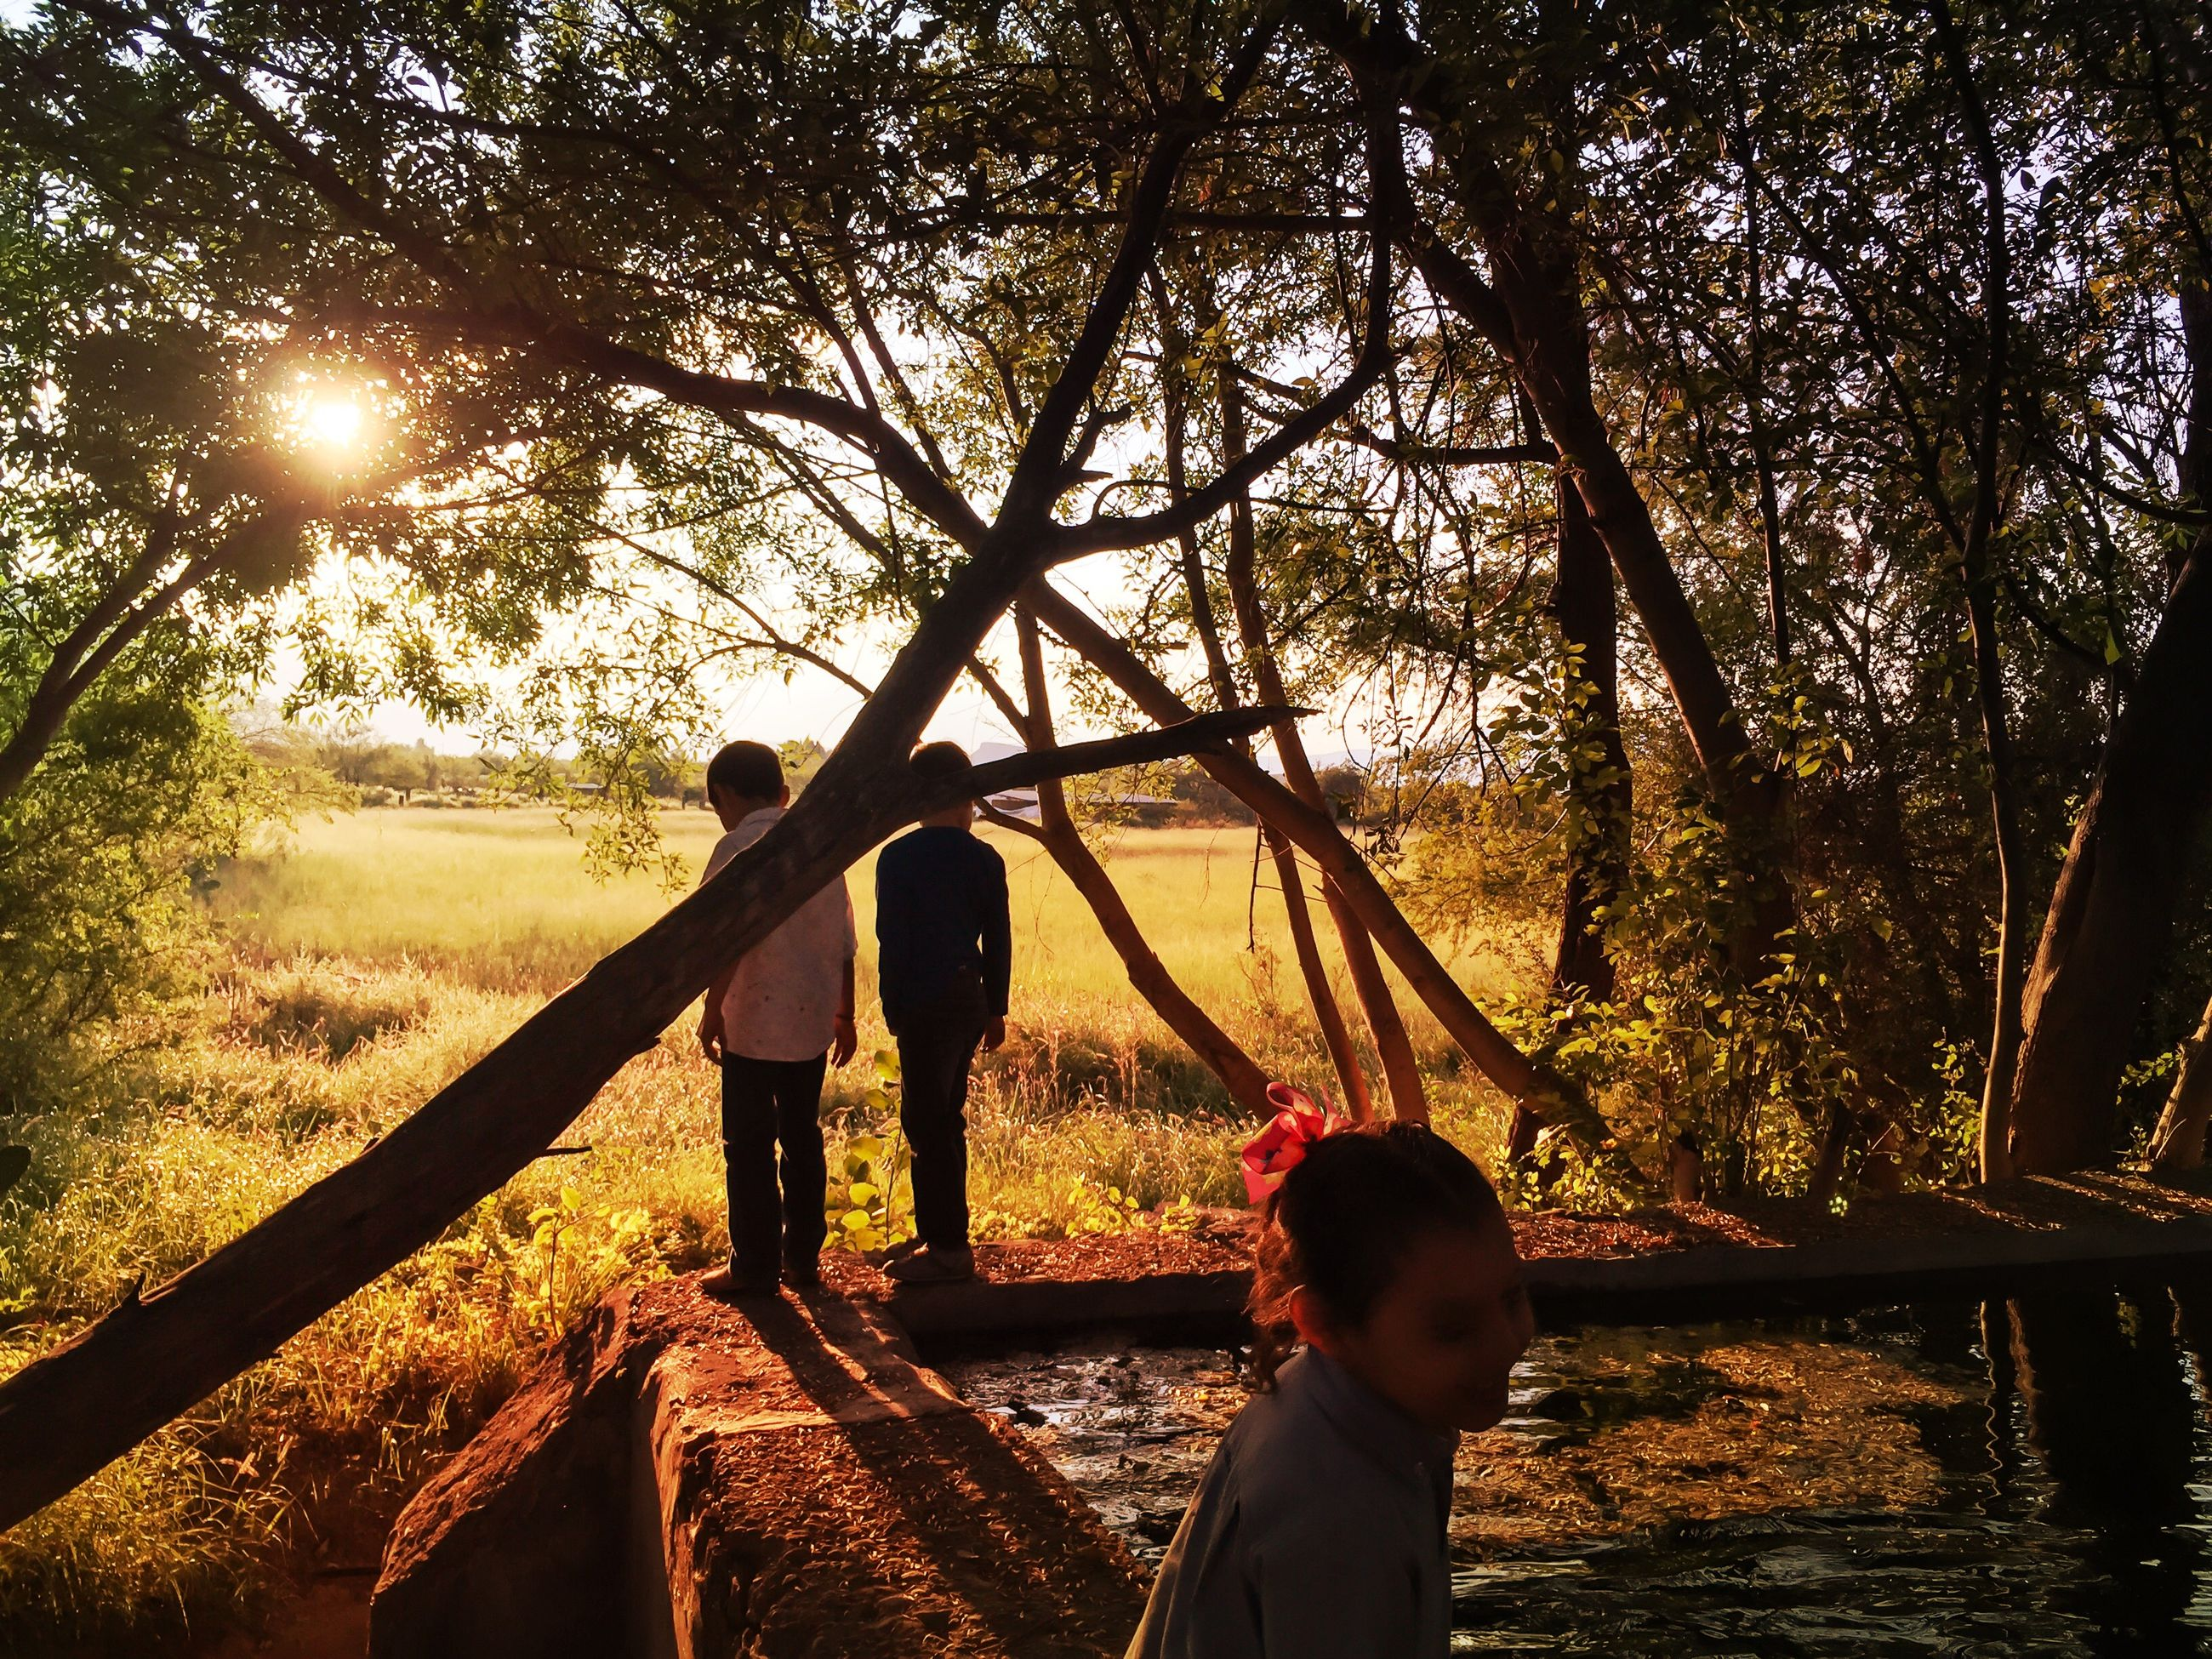 tree, lifestyles, leisure activity, standing, water, casual clothing, tranquility, nature, sunlight, childhood, rear view, sun, sitting, three quarter length, love, togetherness, lake